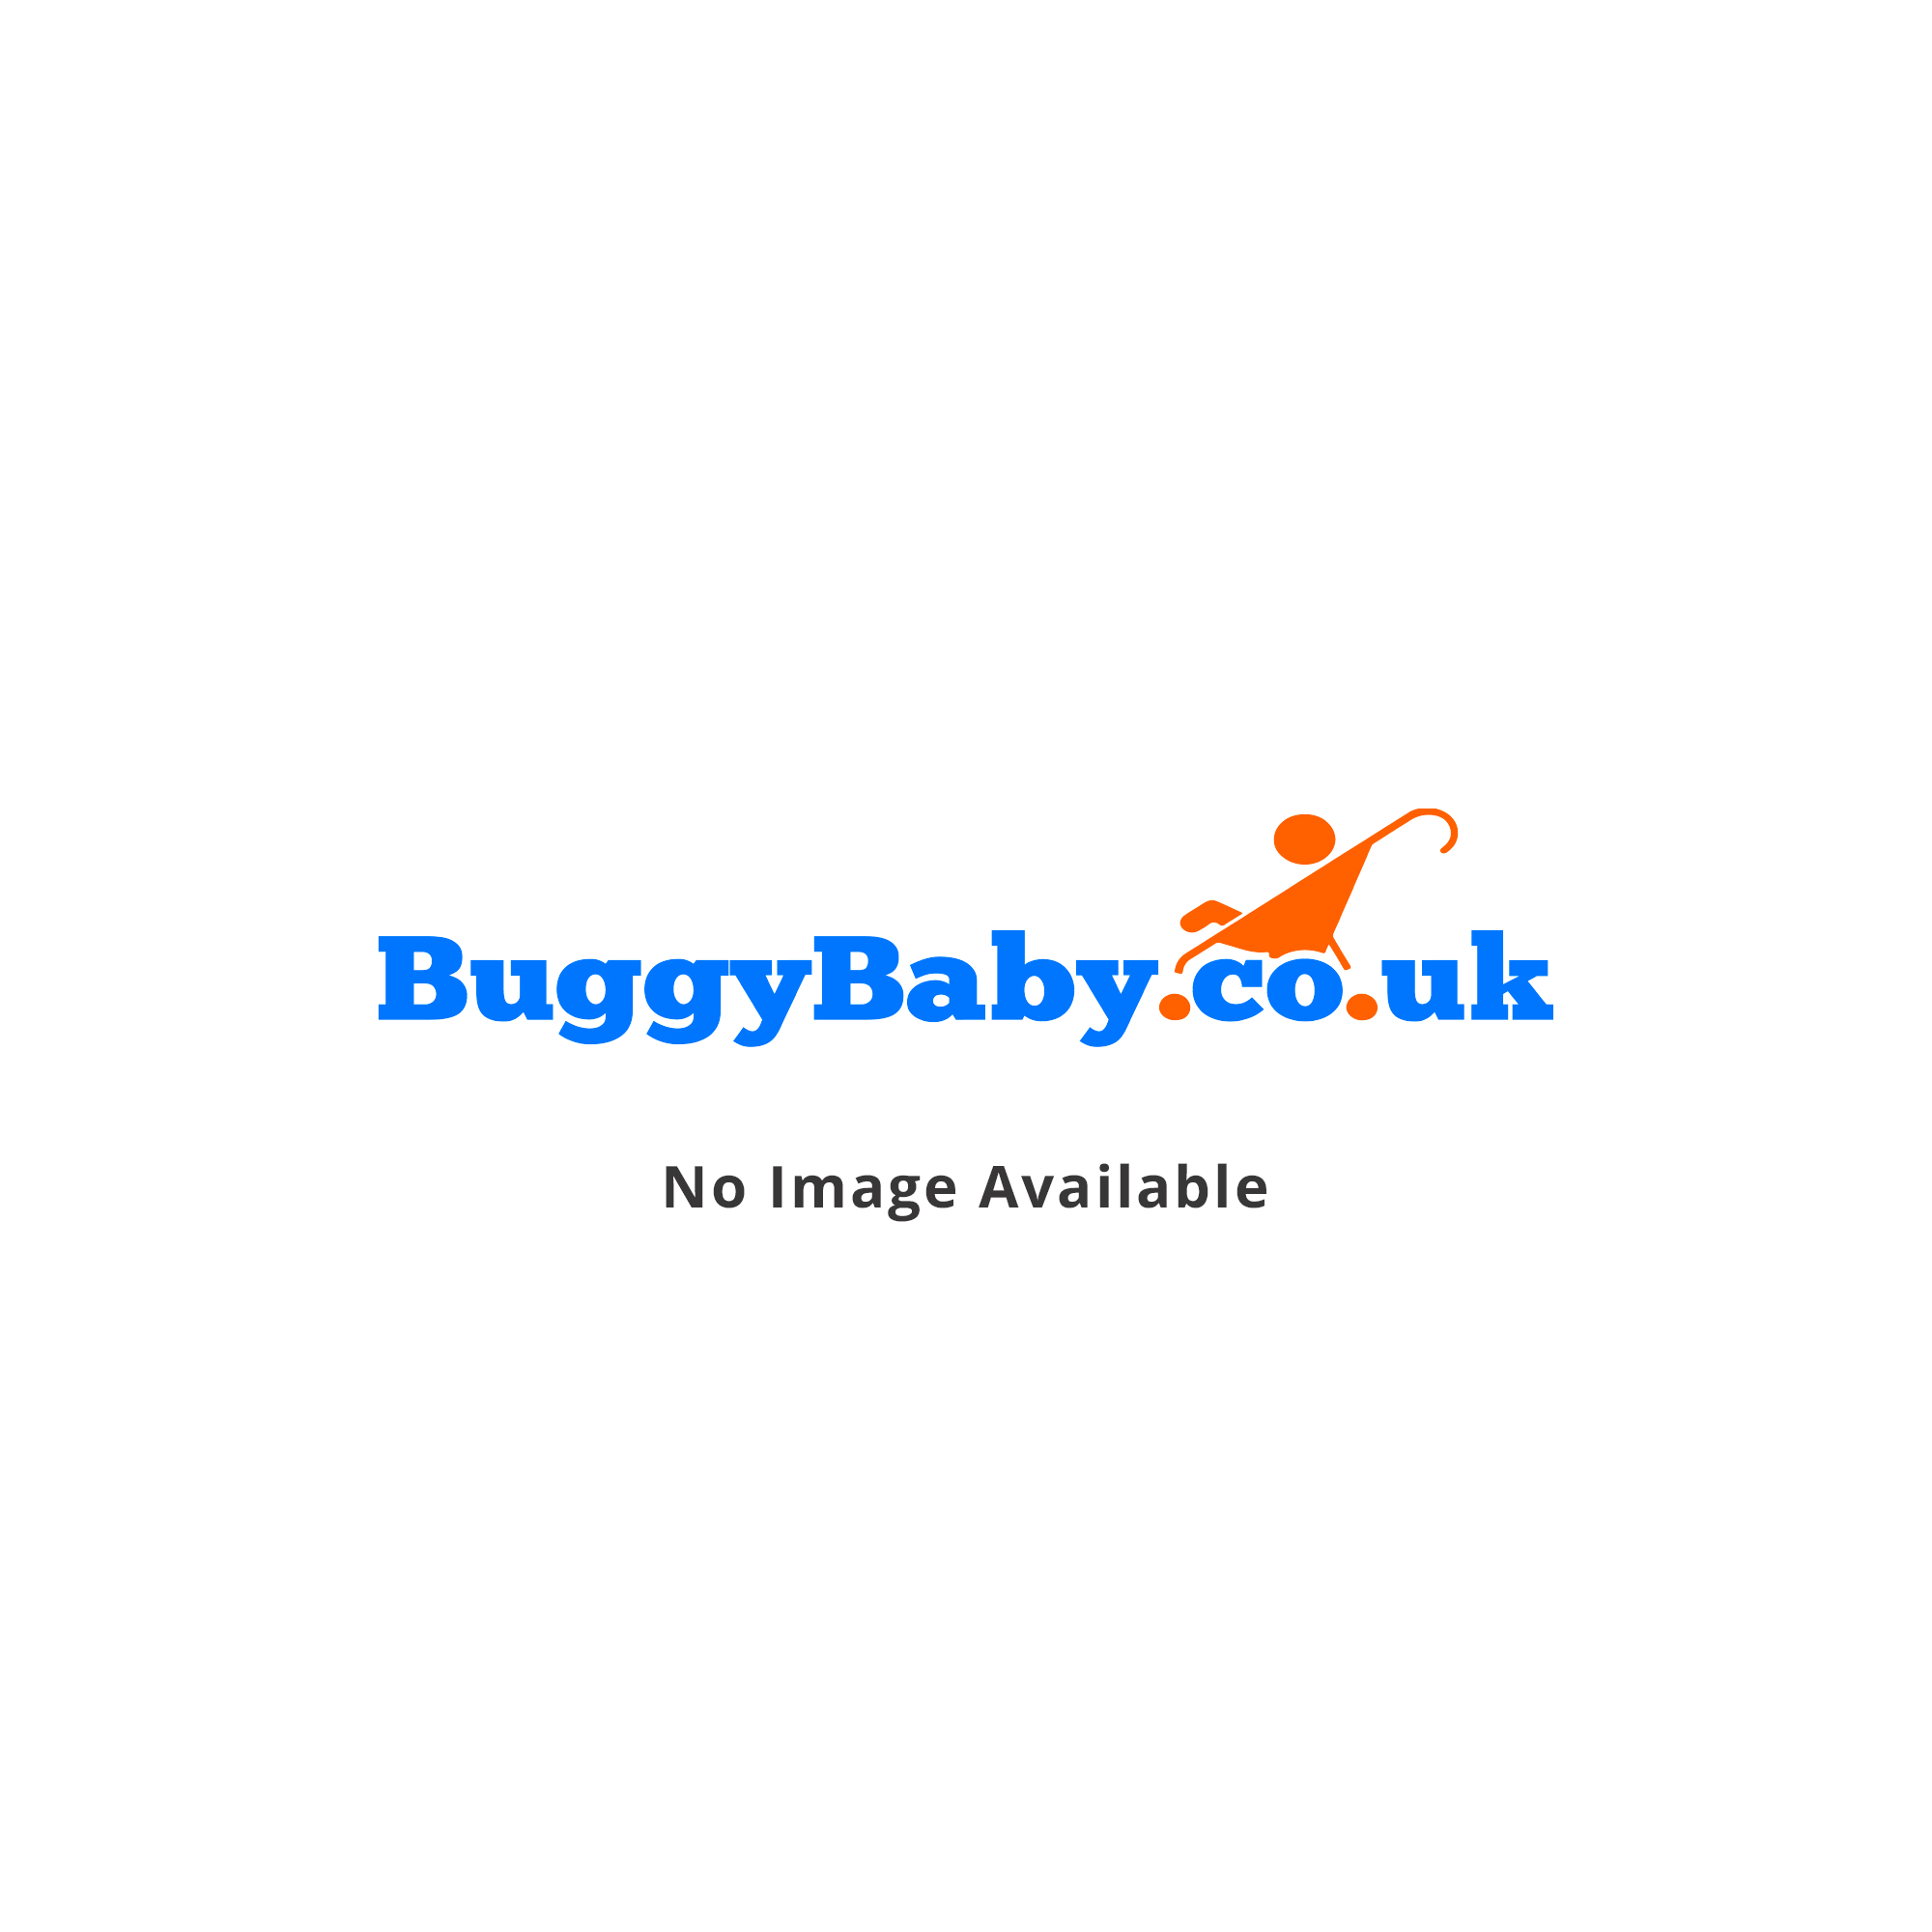 buggybaby buy pushchairs car seats baby toddler. Black Bedroom Furniture Sets. Home Design Ideas